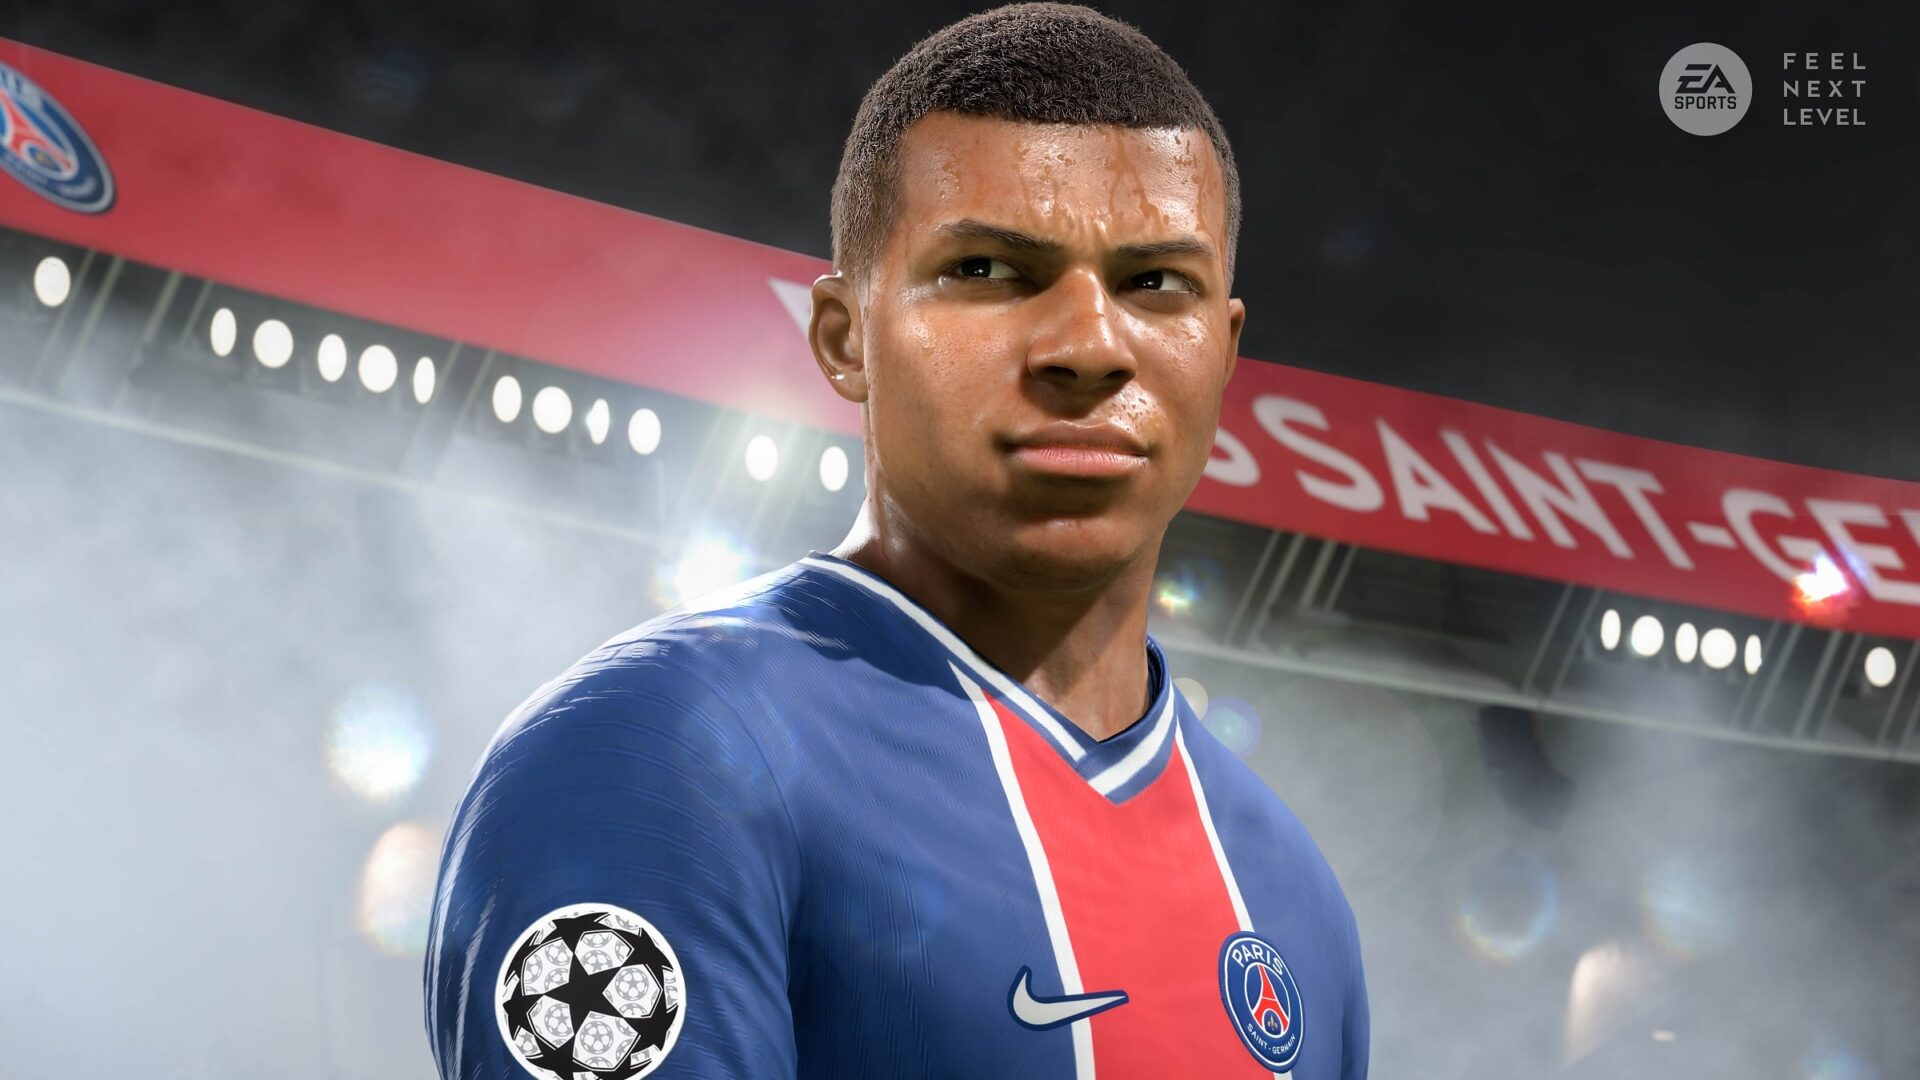 fifa 22 mbappe little brother